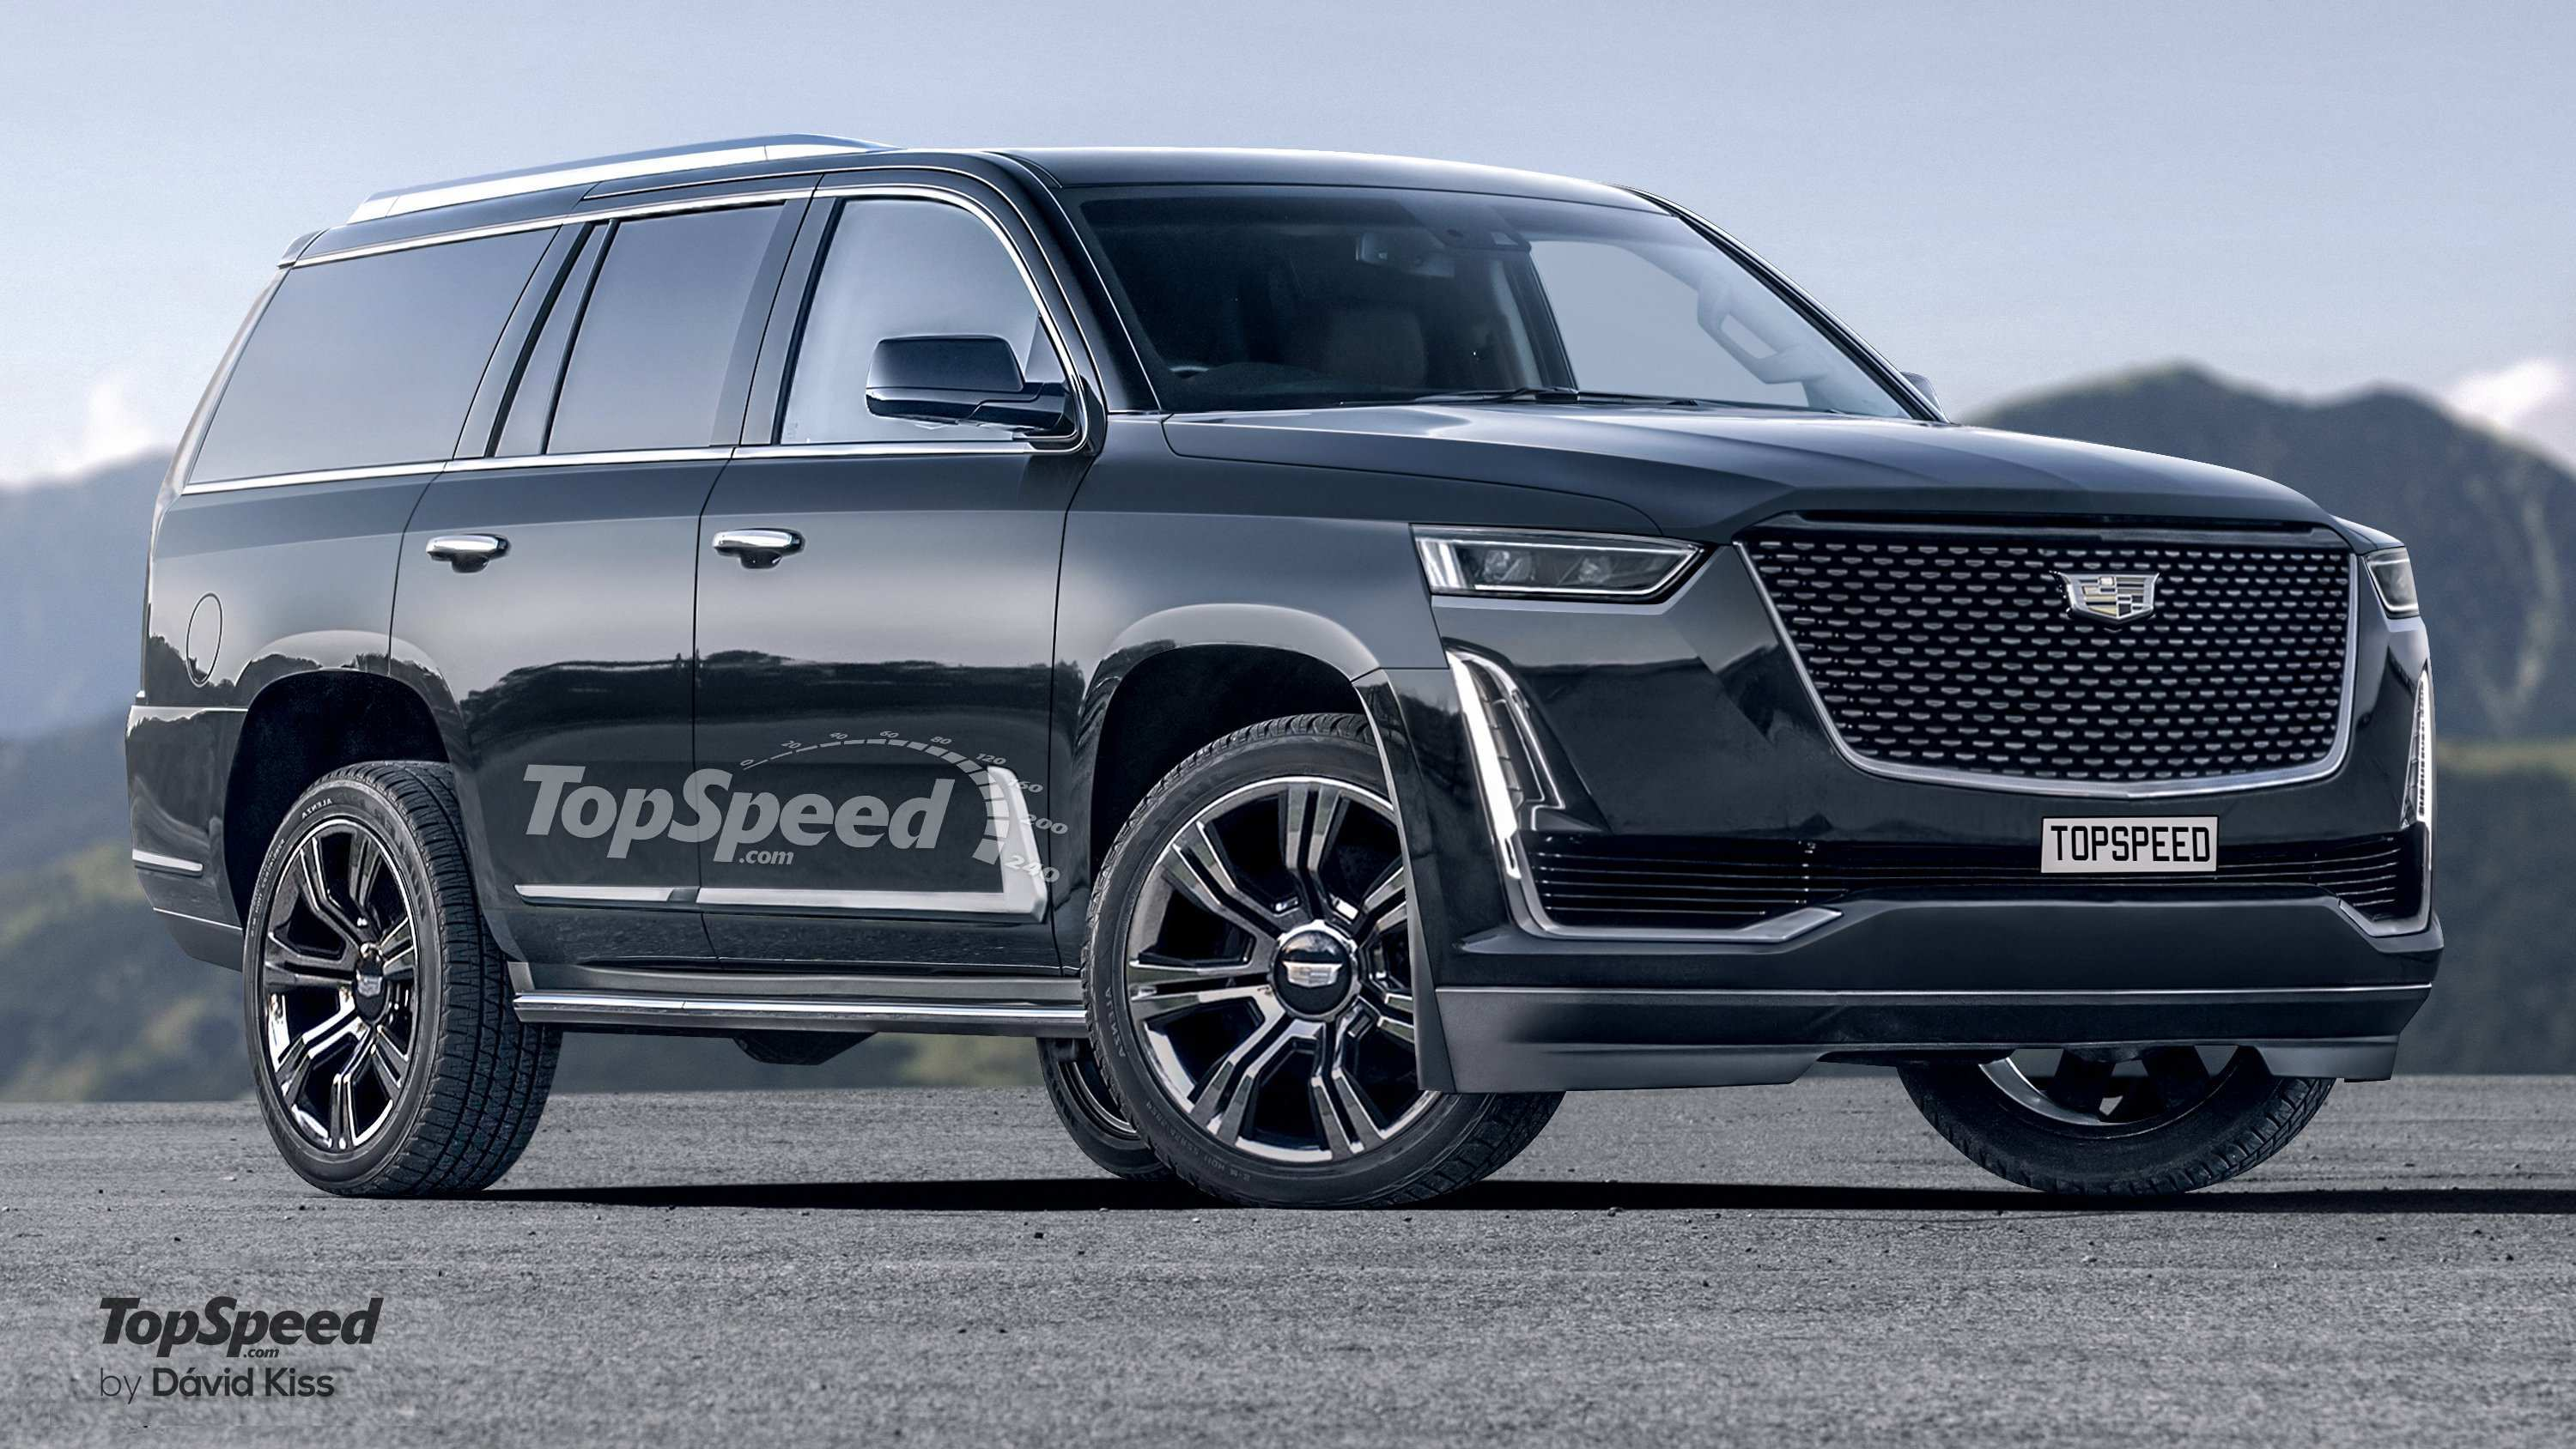 49 All New When Will 2020 Gmc Yukon Be Released Reviews by When Will 2020 Gmc Yukon Be Released